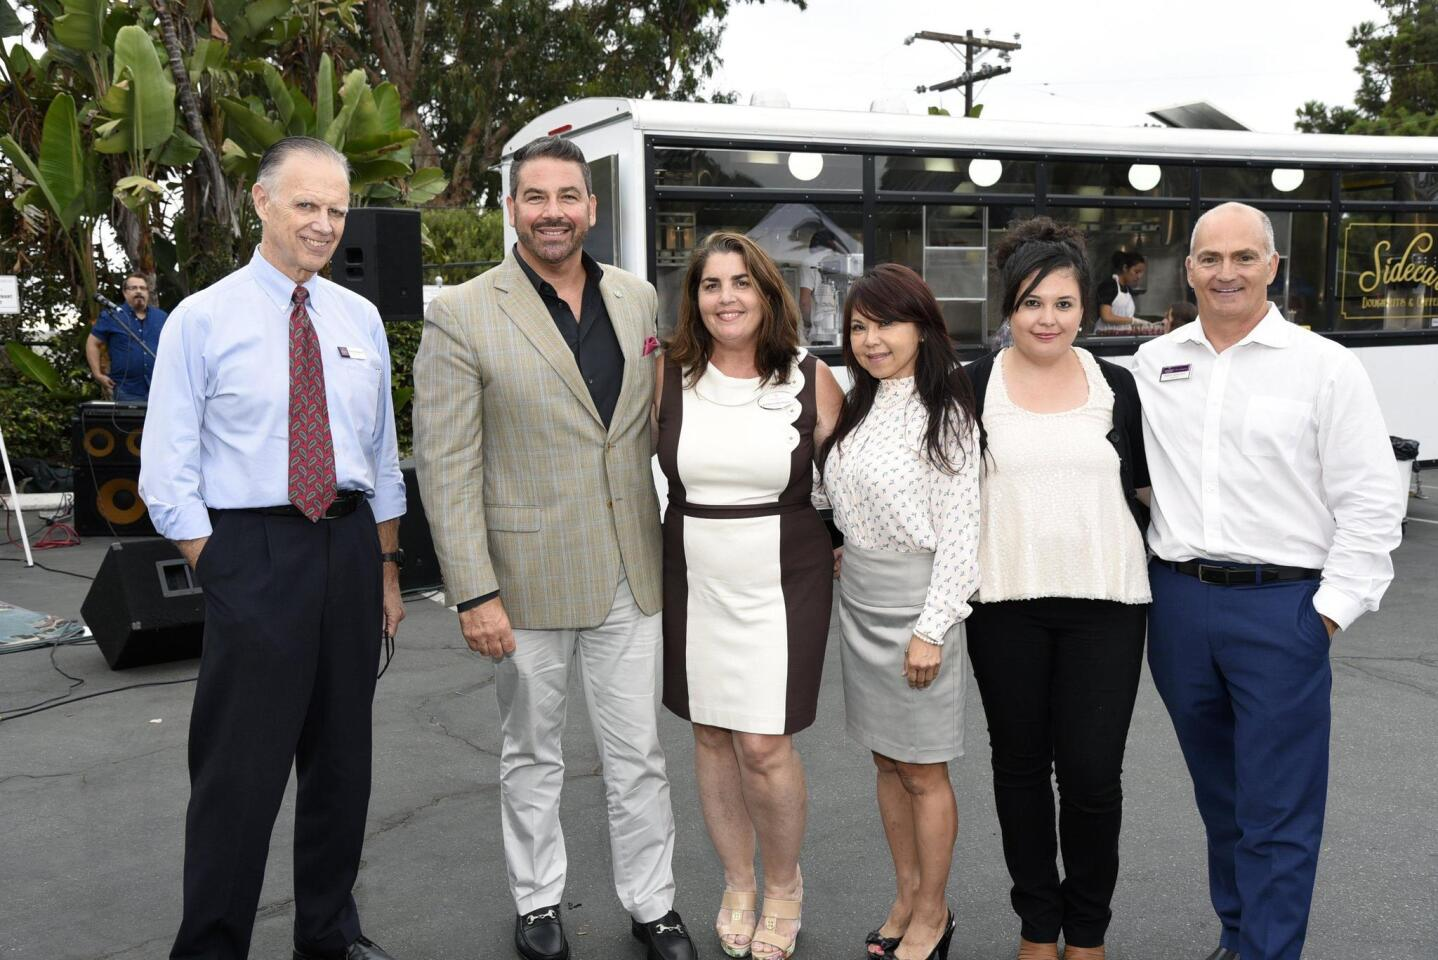 Berkshire Hathaway was well represented at The Taste of Del Mar with Tom Atkinson, Paul Benec, Kimberly Riedlinger, Chris Lun, Madeline Mason, Brent Ringoot